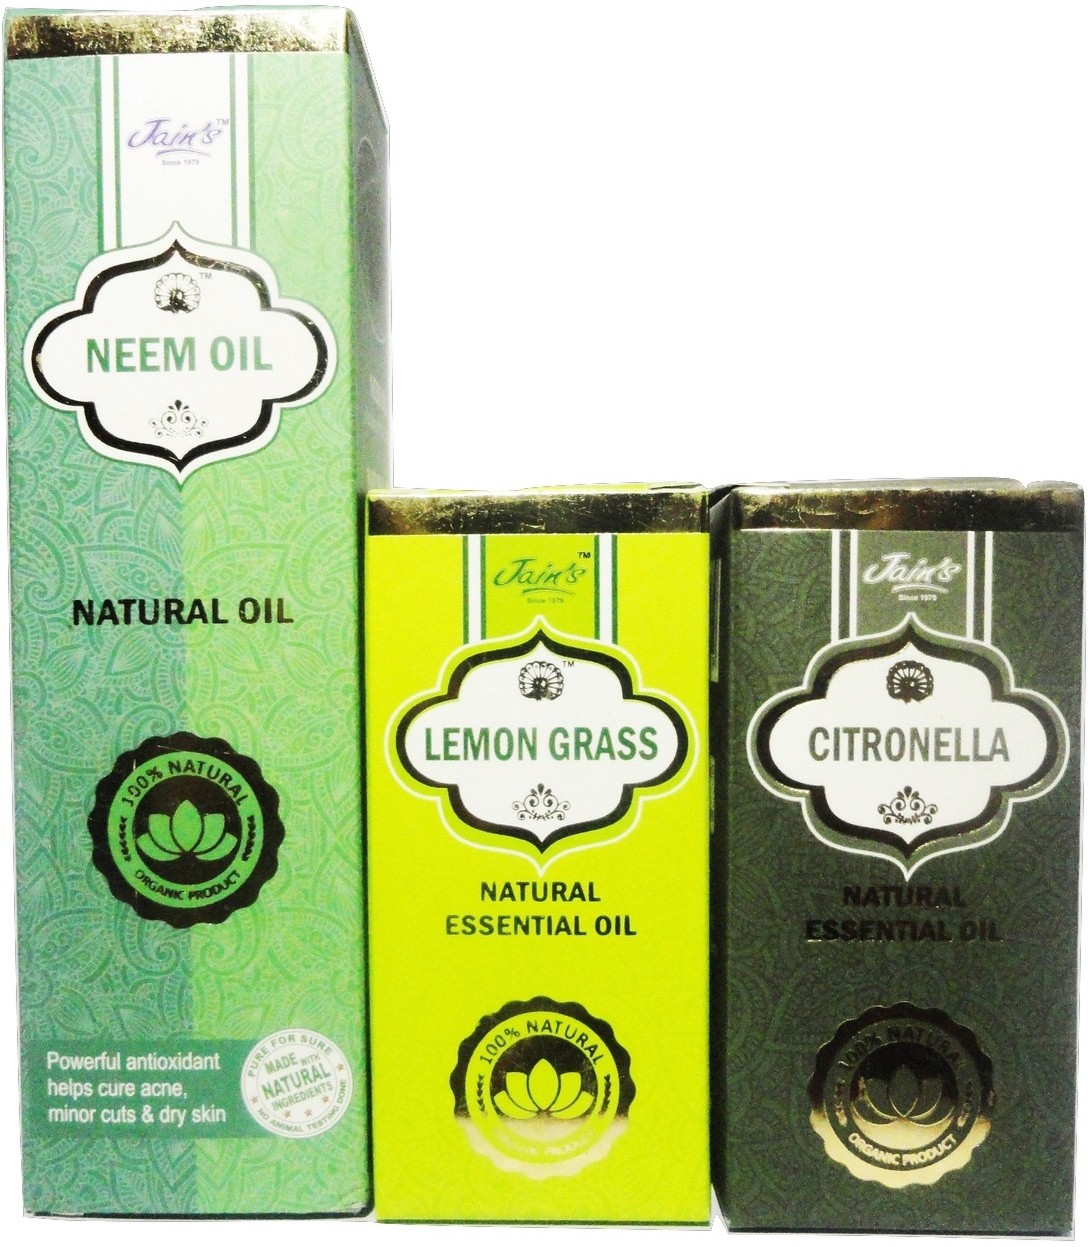 Jains Set of 3 (1 Neem Natural/Base/carrier 100 ml Oil and 2 Essential Lemon Grass and Citronella (10 ml each)(120 ml)